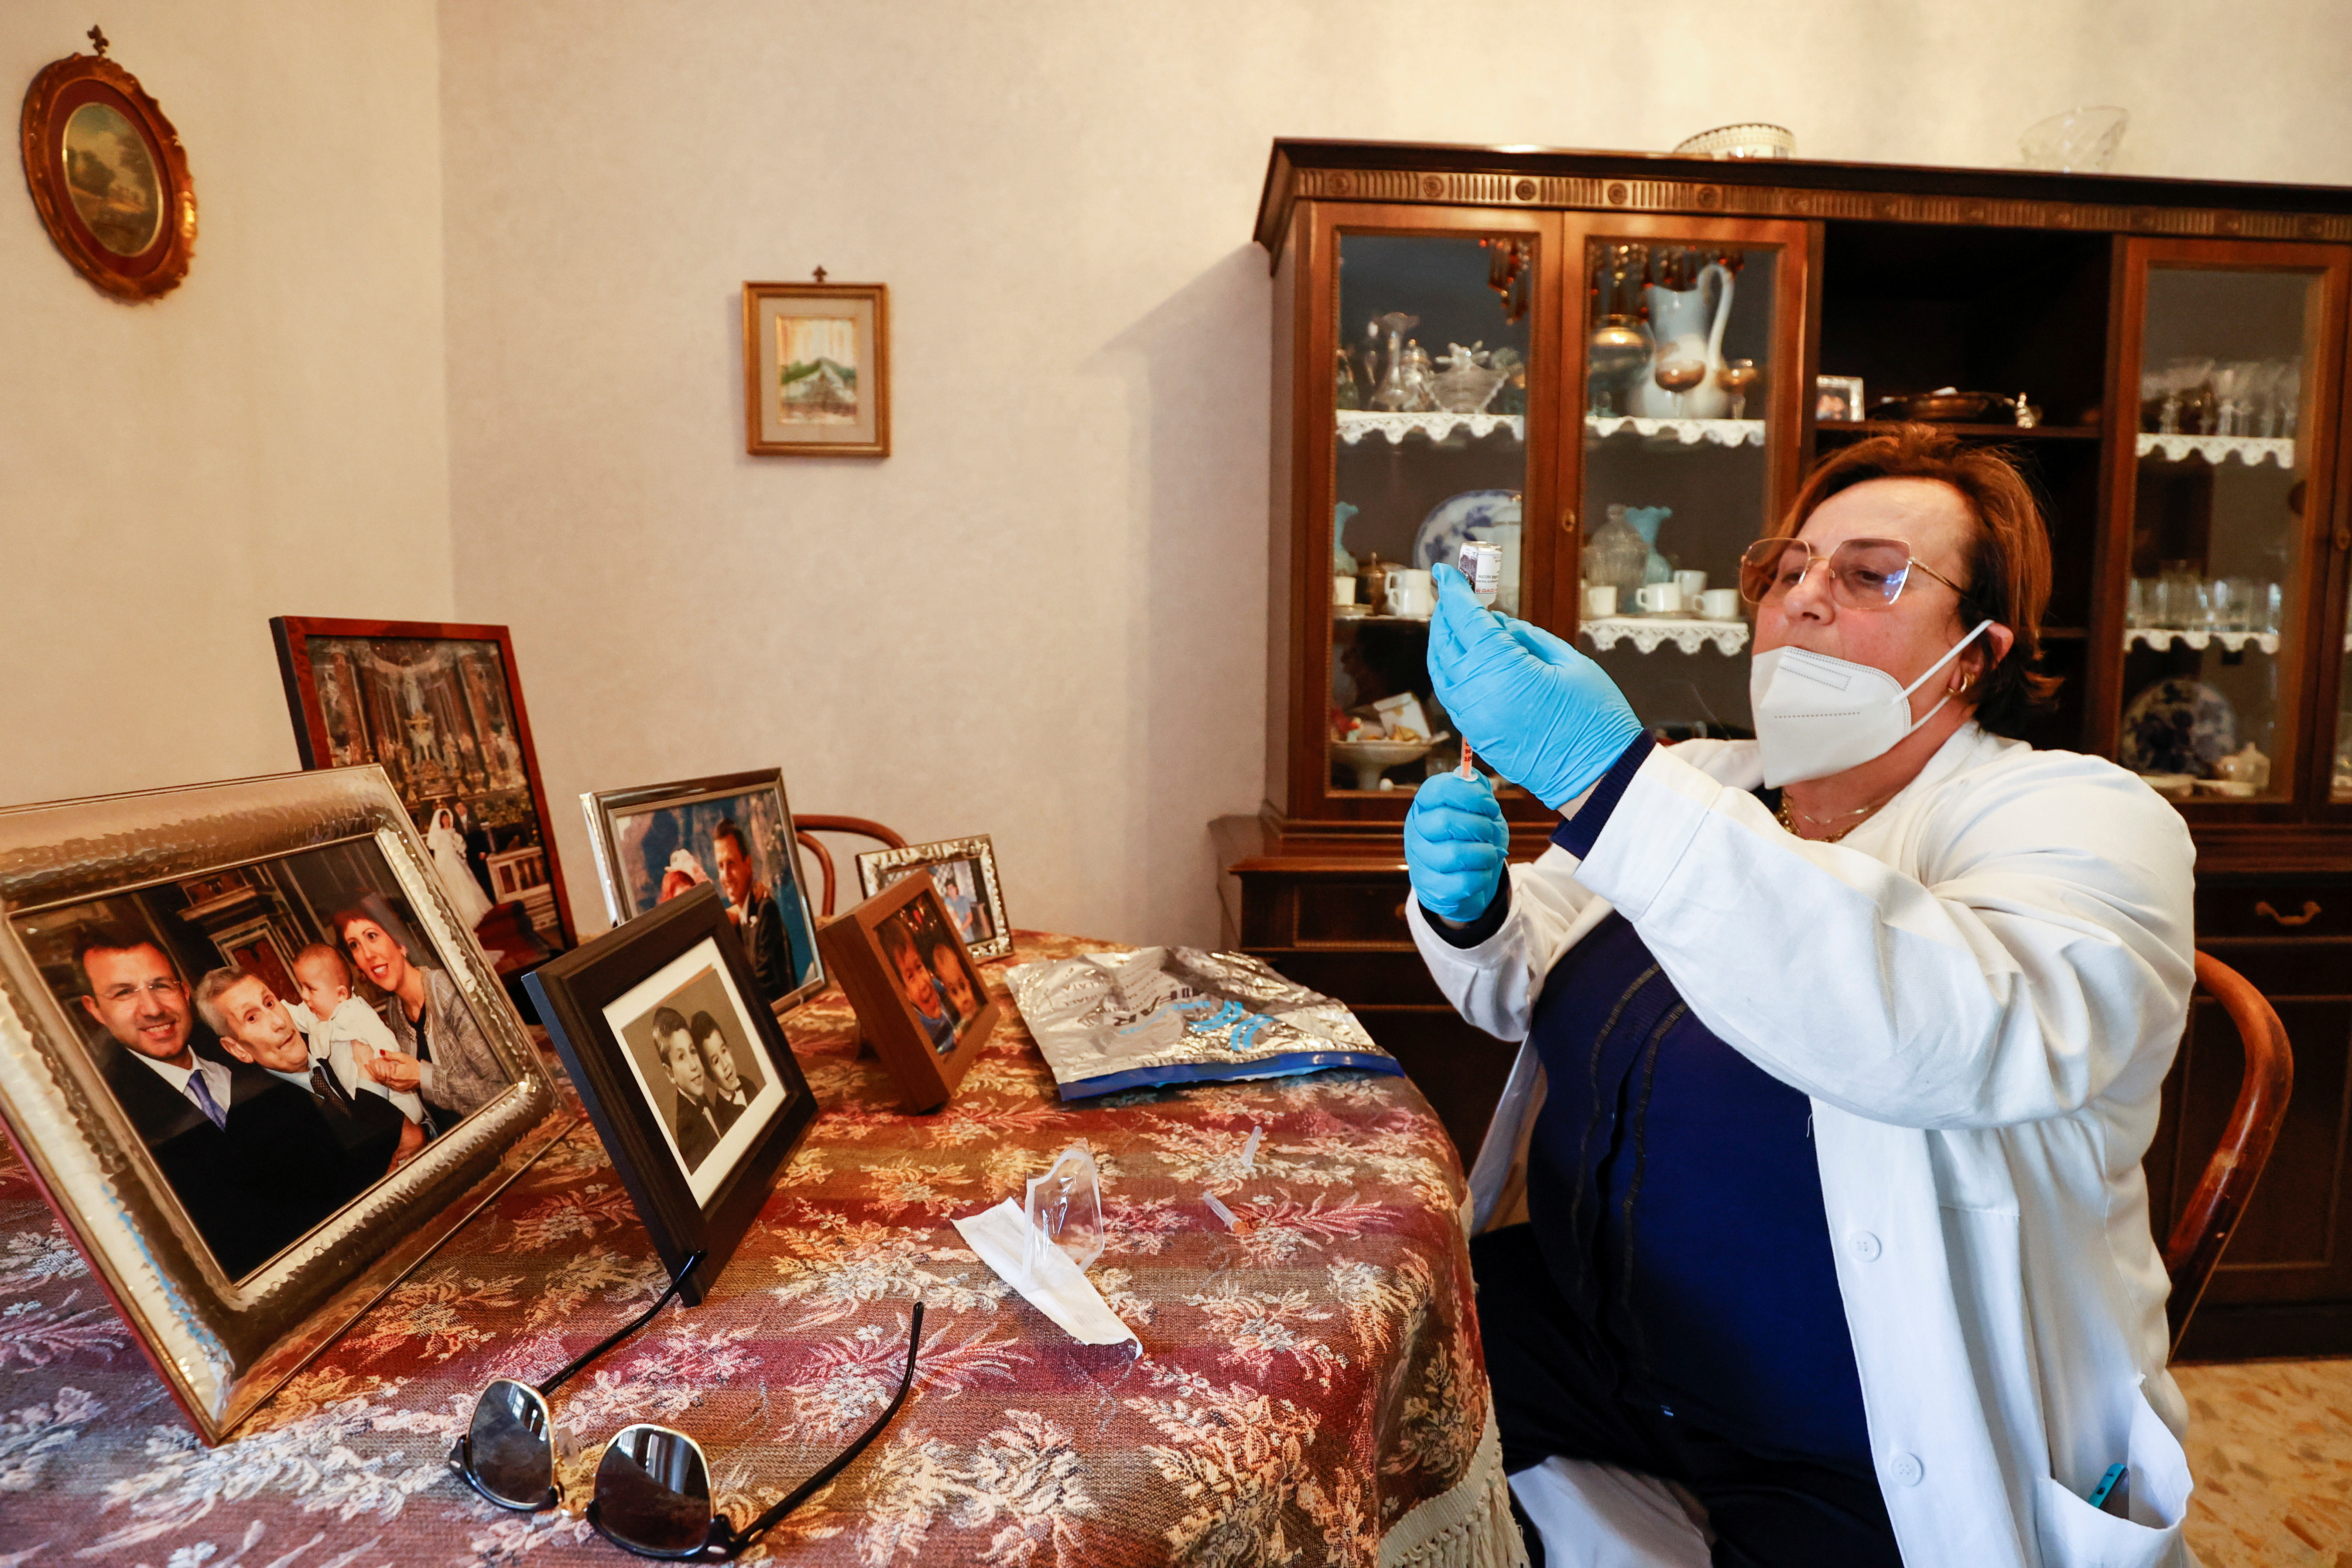 image of doctor Pina Tomaselli prepares a syringe containing a dose of the Moderna coronavirus disease (COVID-19) vaccine at a care home in Naples, Italy